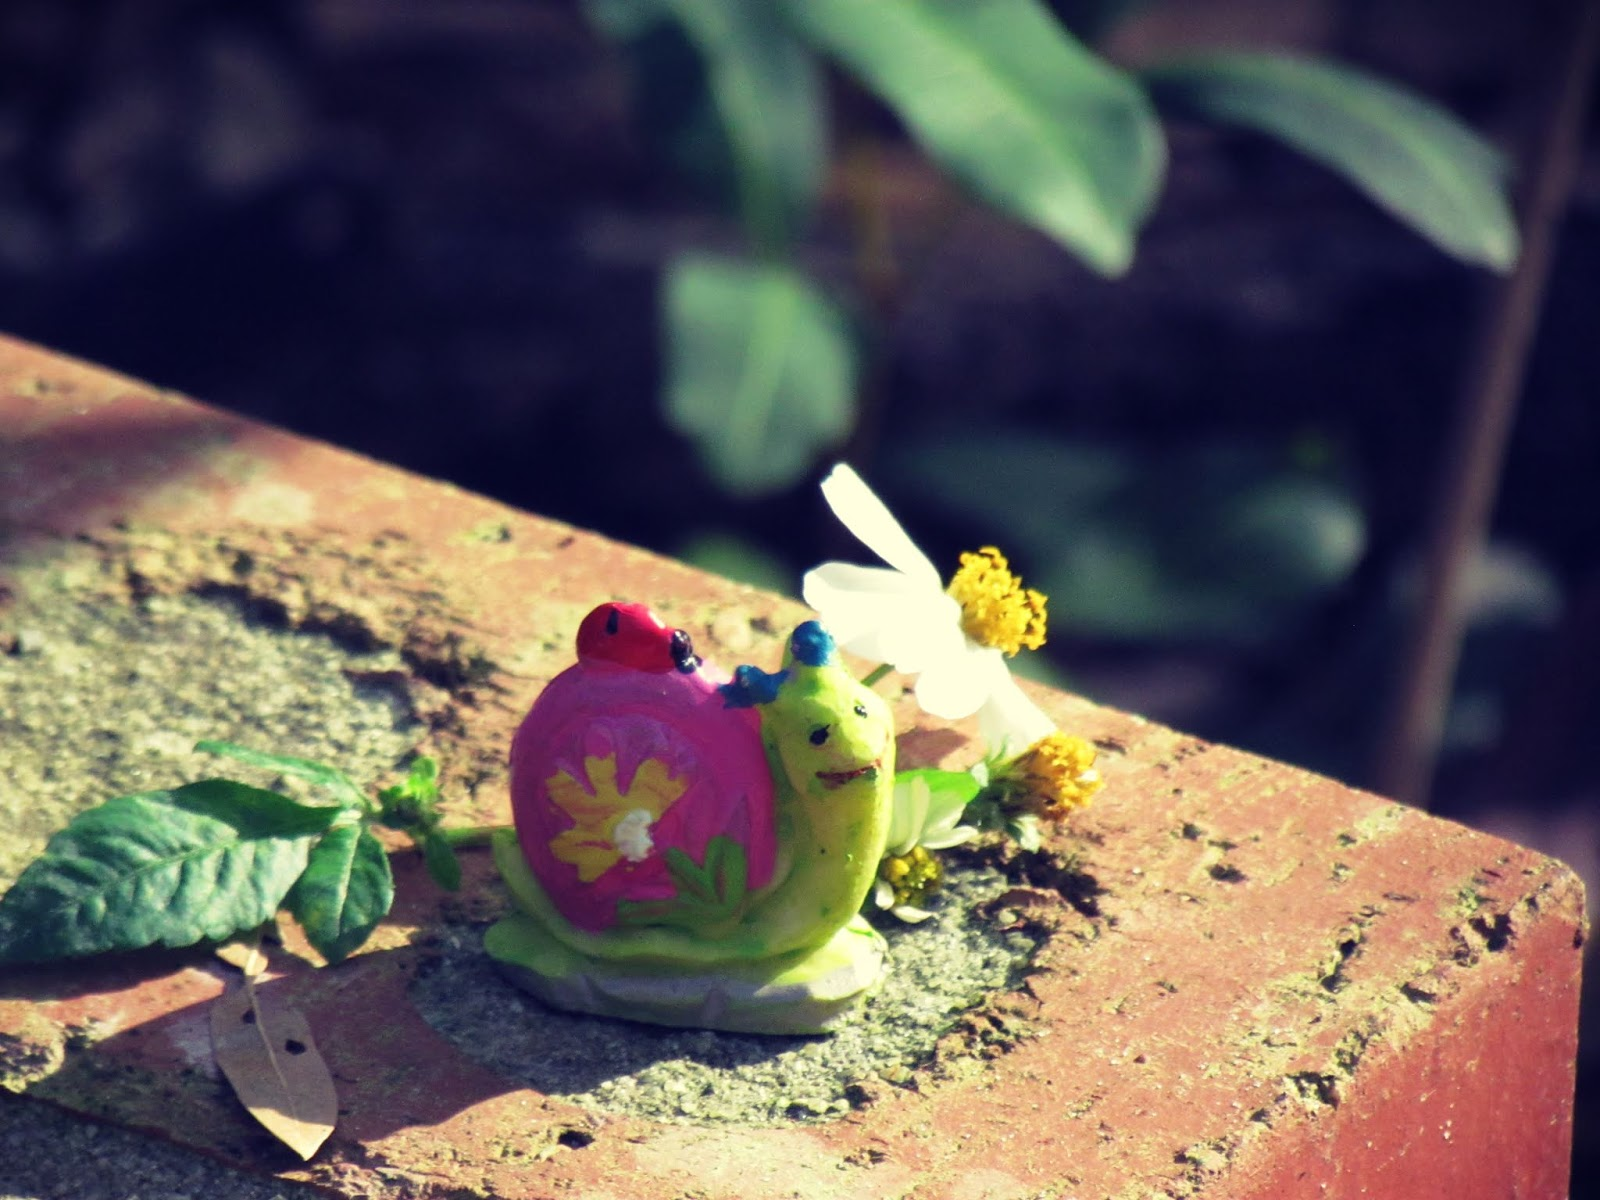 A brick manmade garden in Hammock Park With Soil, green leaves, wild daisies, and a faux garden snail in the sunlight